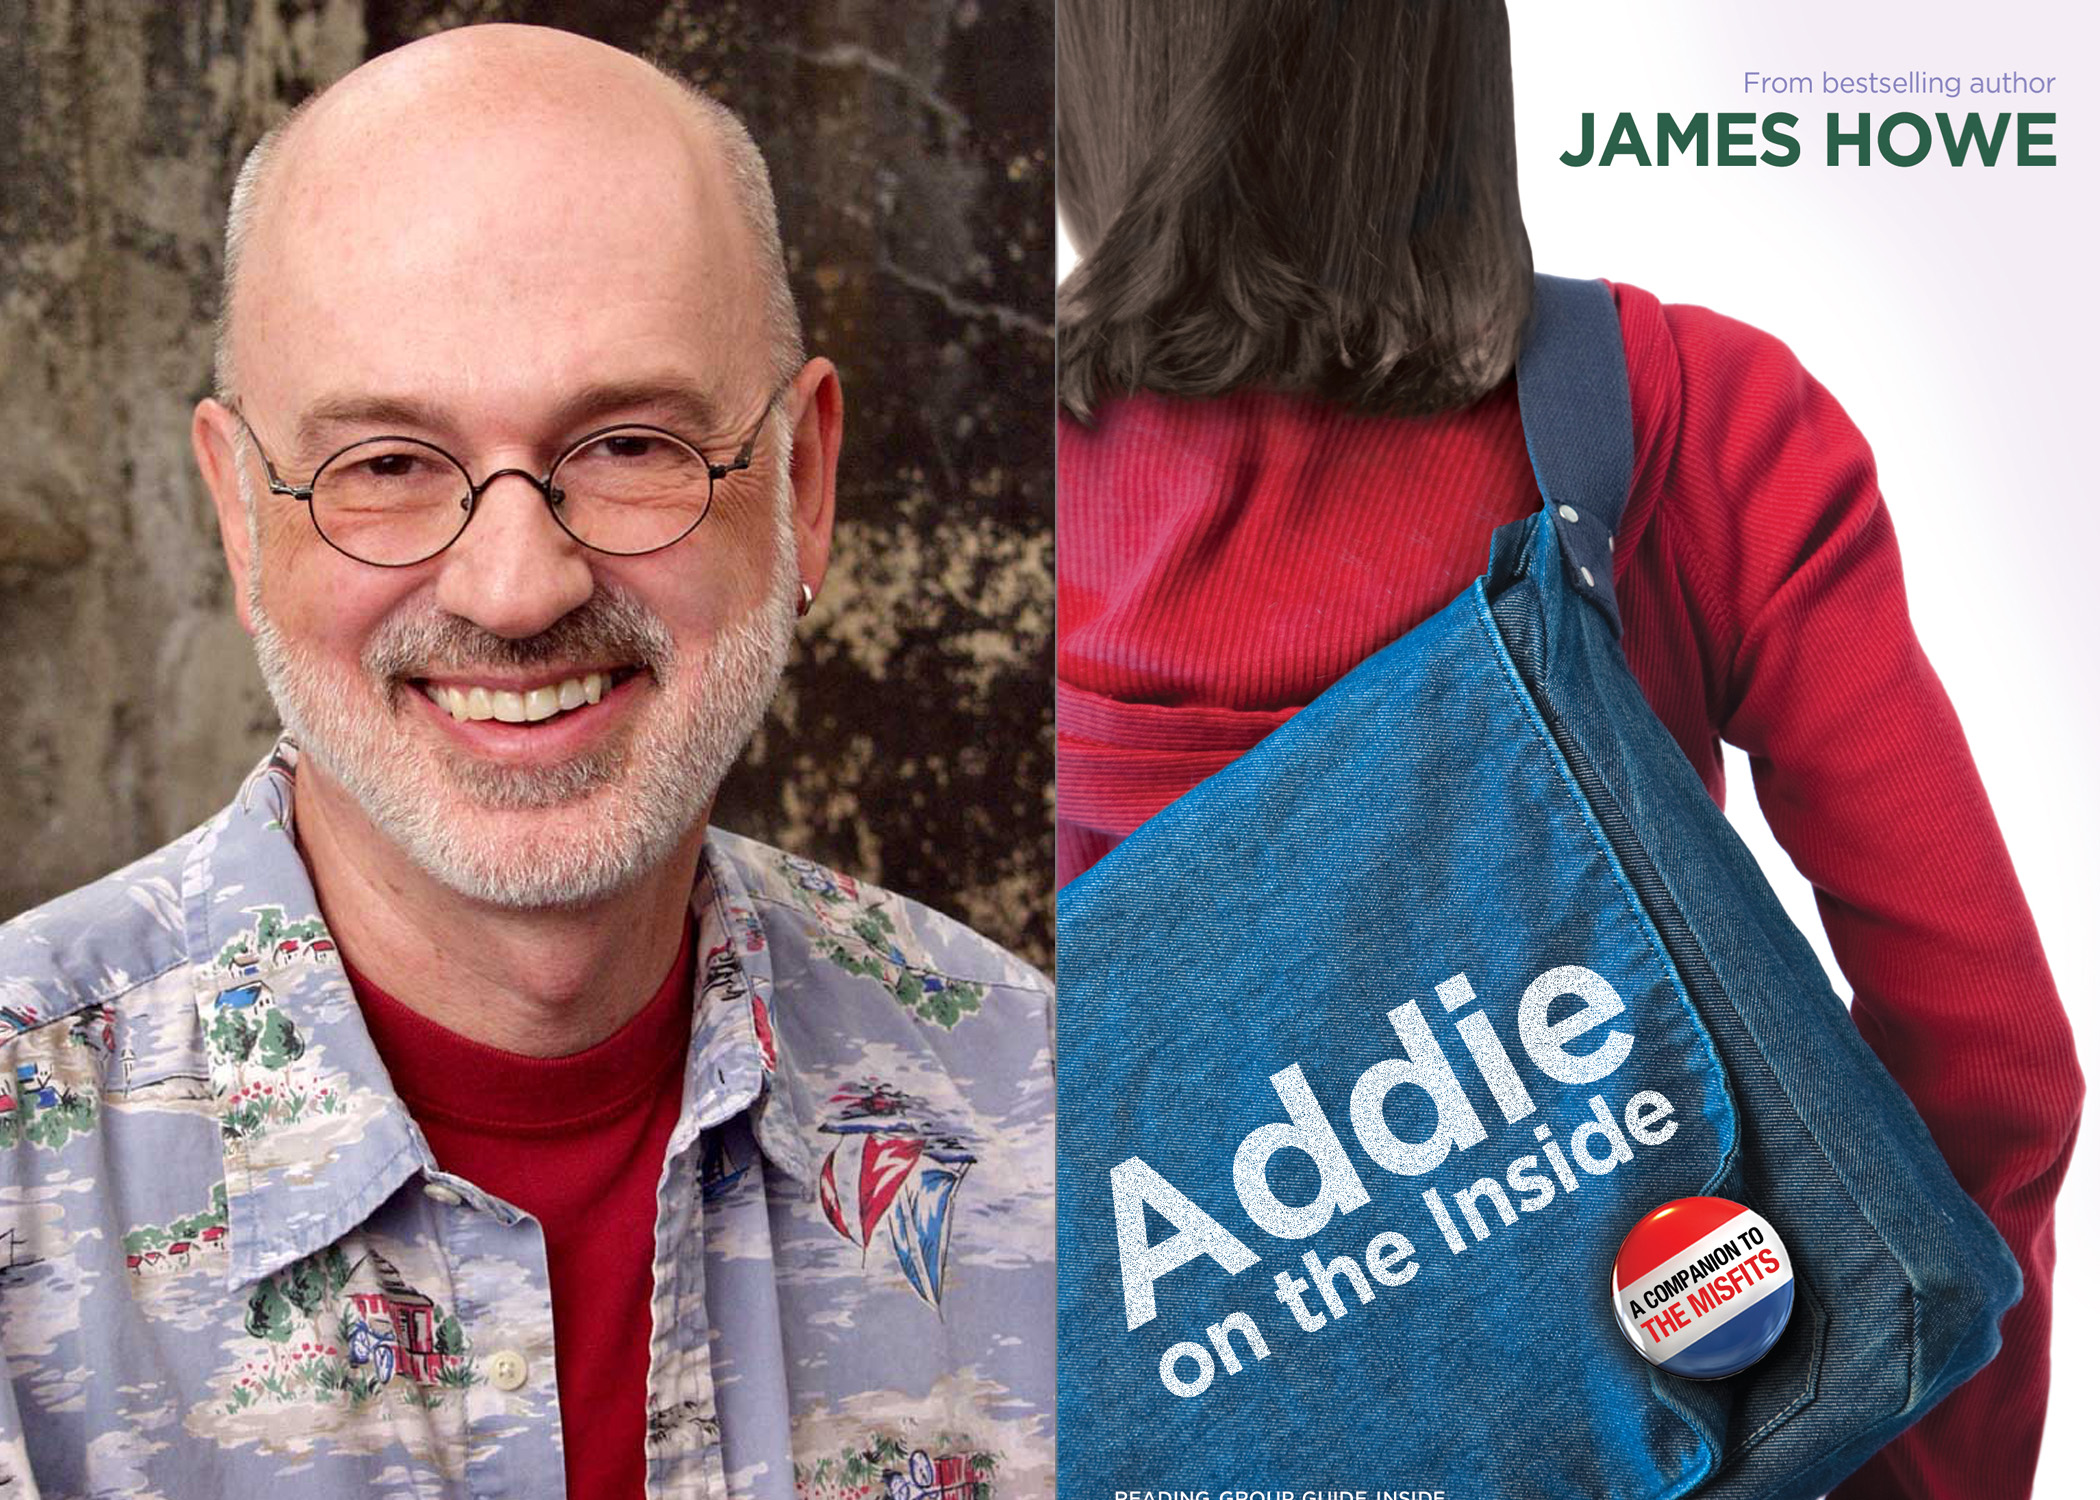 'Addie on the Inside' signed by James Howe